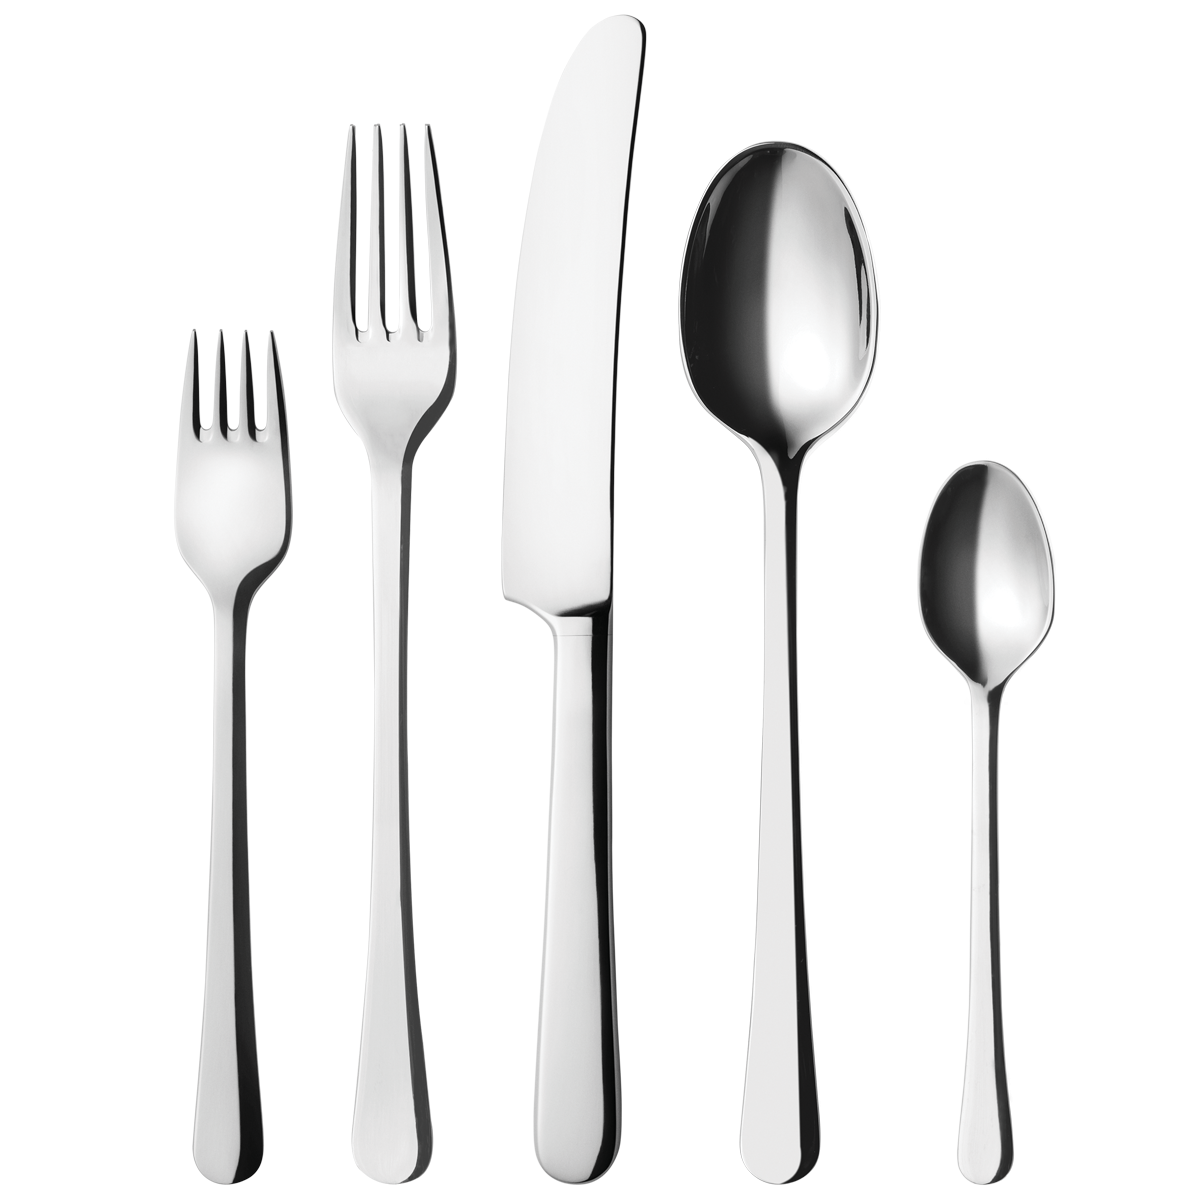 Hotel clipart spoon. Png images transparent free